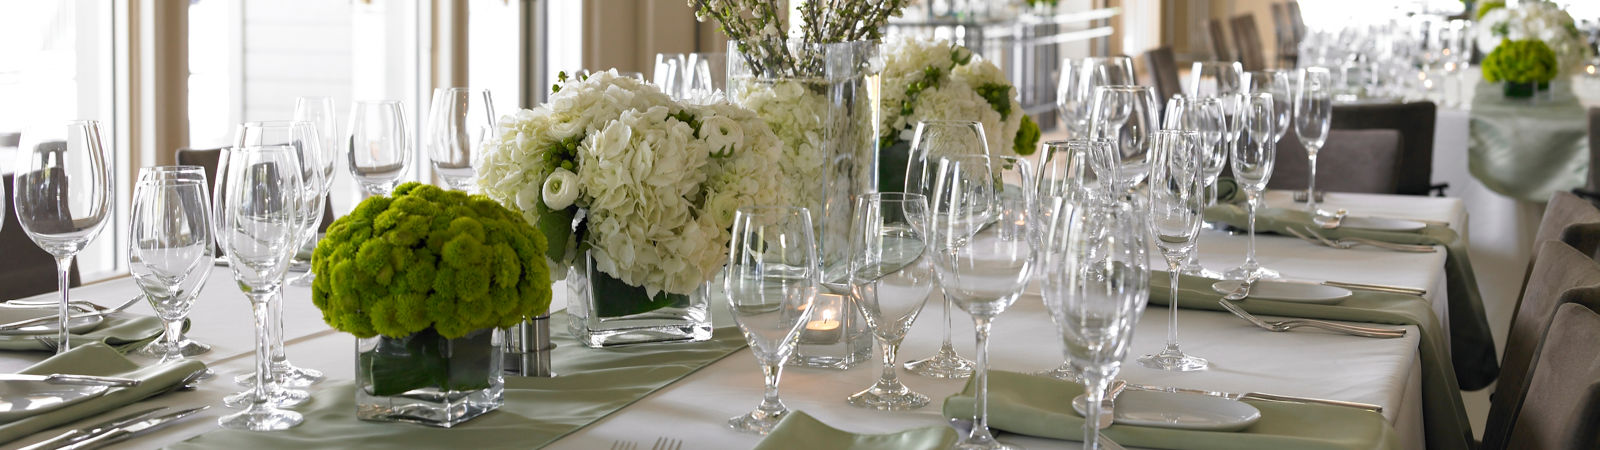 Carmel Valley Ranch_Weddings_table setting in Redwood ballroom